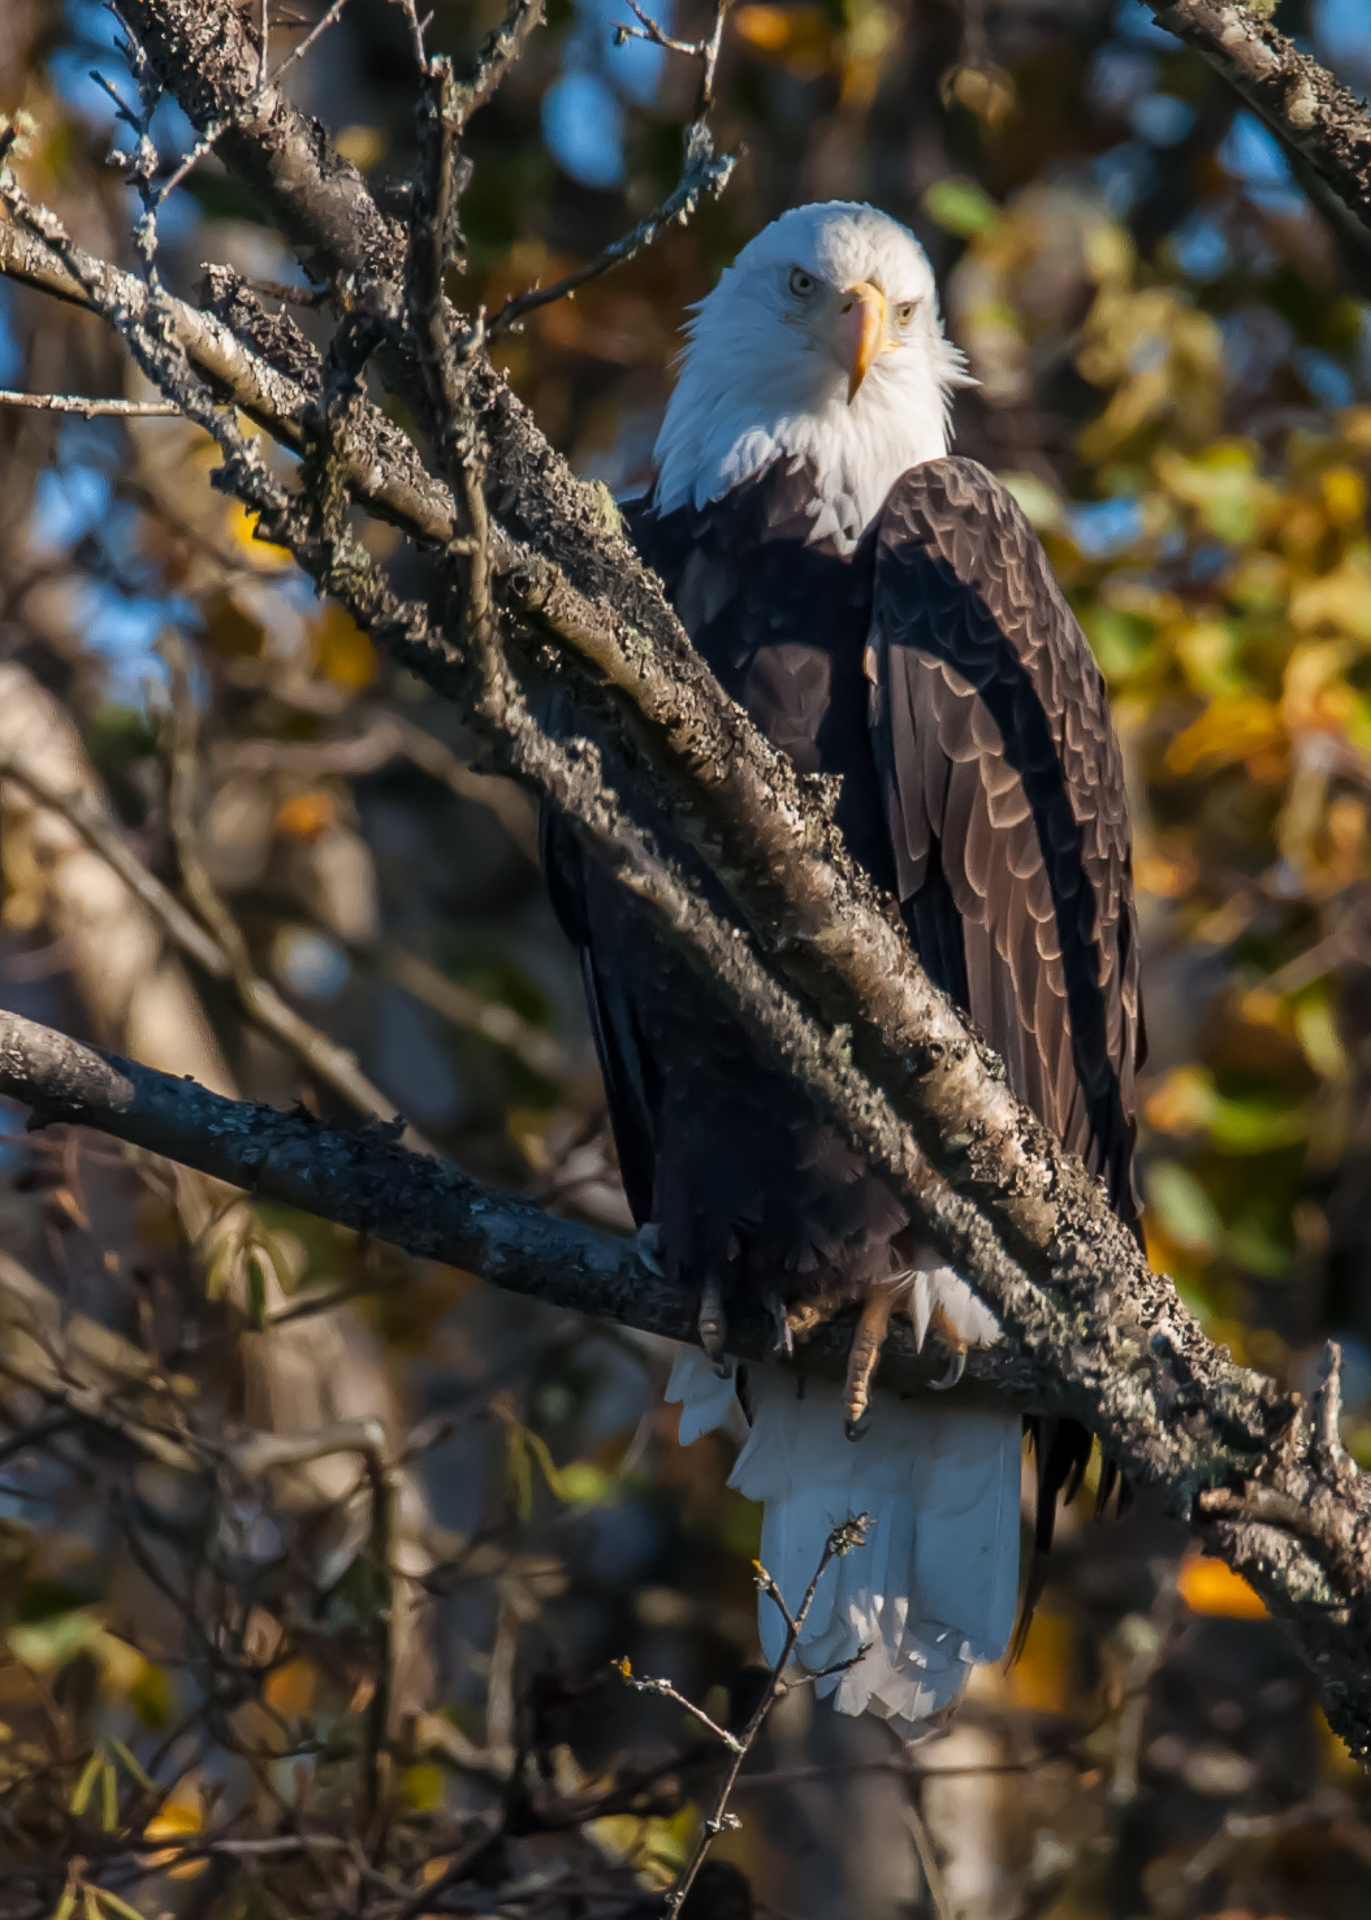 This bald eagle was keeping an eye on me.